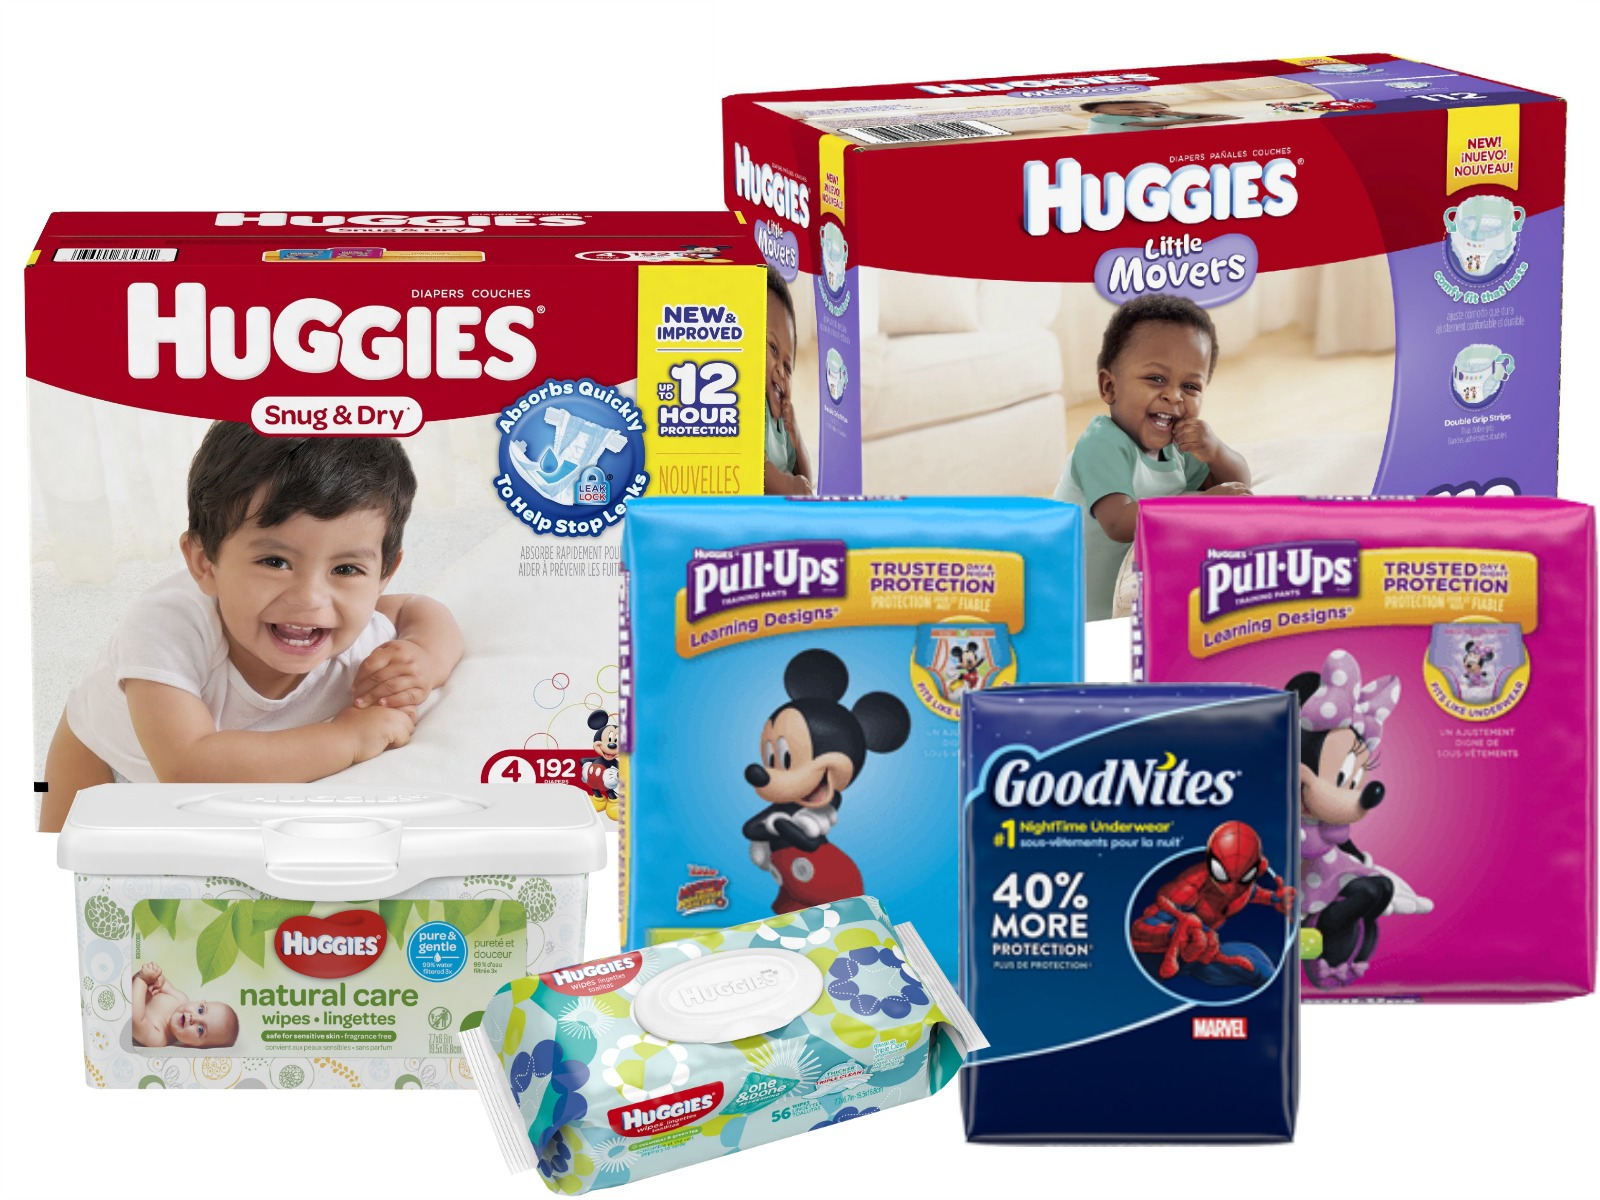 Free Instacart Delivery With A $20 Huggies, Pull-Ups & GoodNites Purchase At Publix on I Heart Publix 1